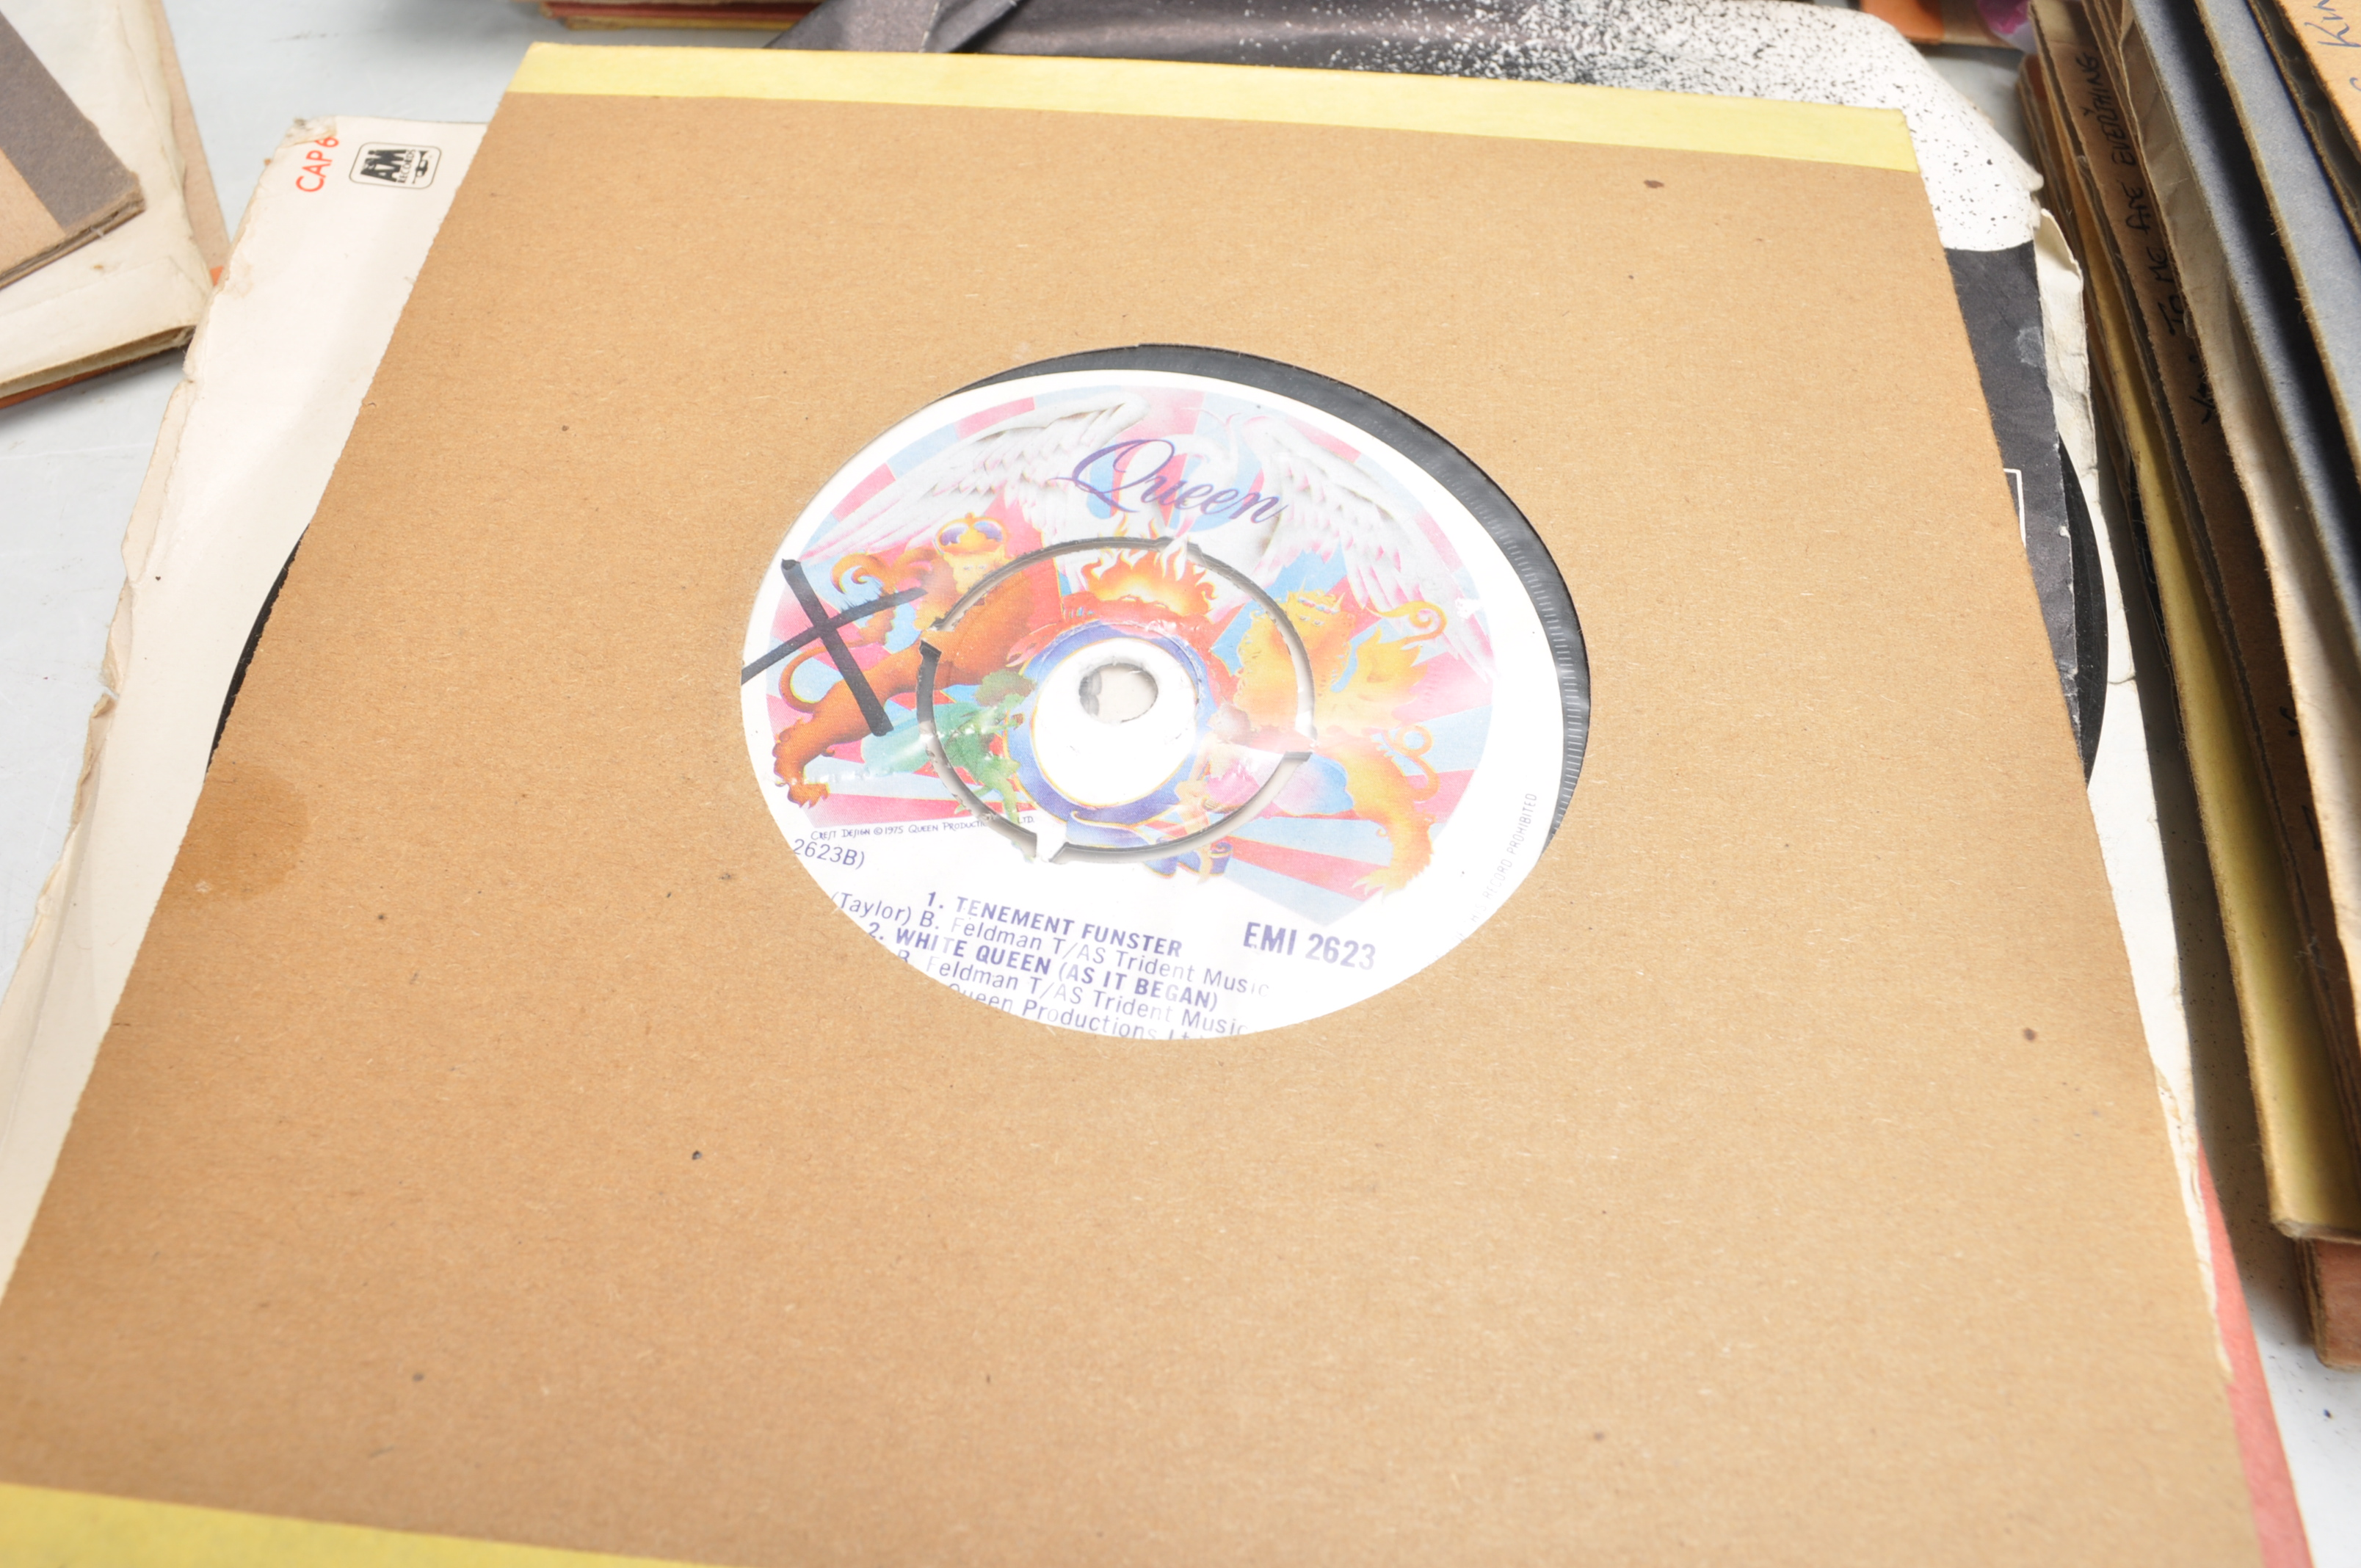 """LARGE COLLECTION OF VINTAGE VINYL 45RPM 7"""" SINGLES - Image 6 of 9"""